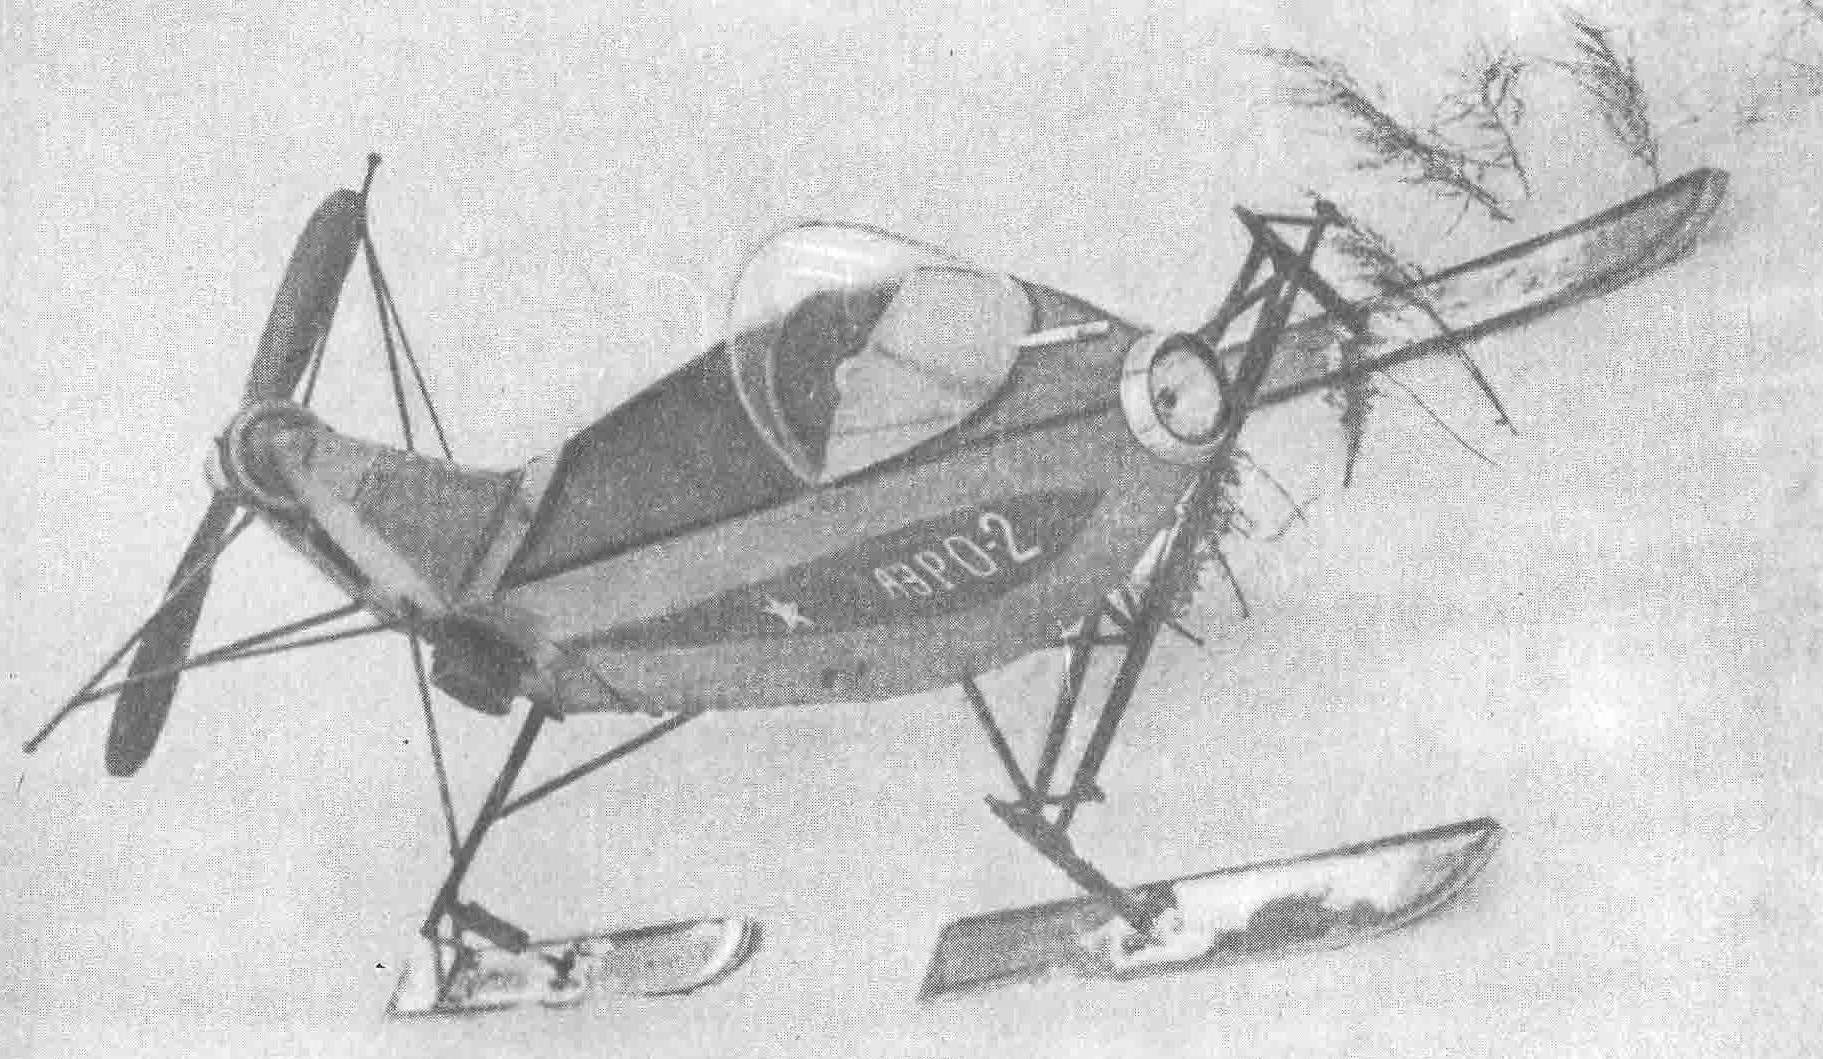 Original suspension ski snowmobiles built by P. Seminum on the frame horns.